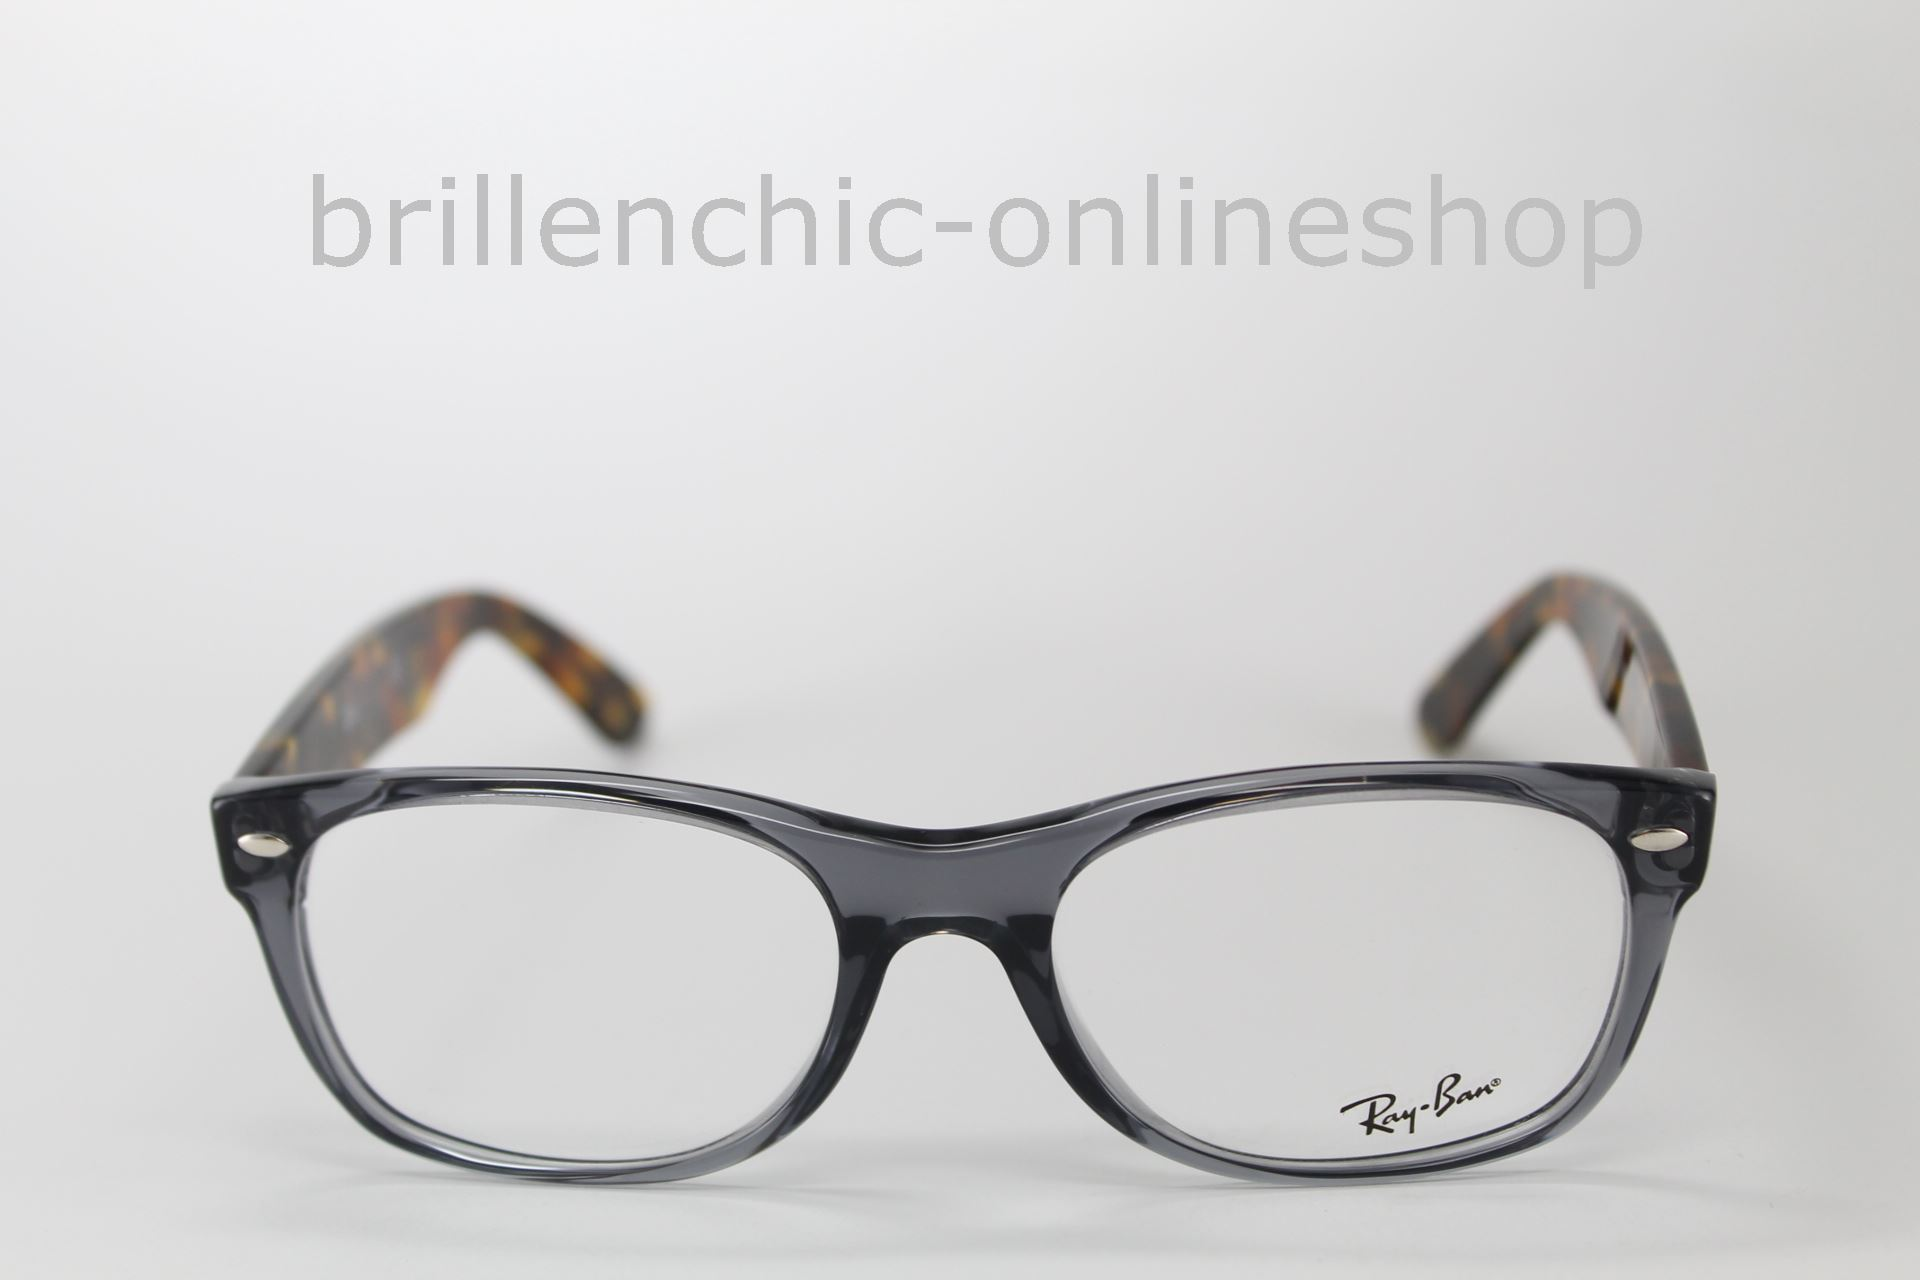 d13867d9b4 Brillenchic-onlineshop in Berlin - Ray Ban RB 5184 5629 NEW WAYFARER ...